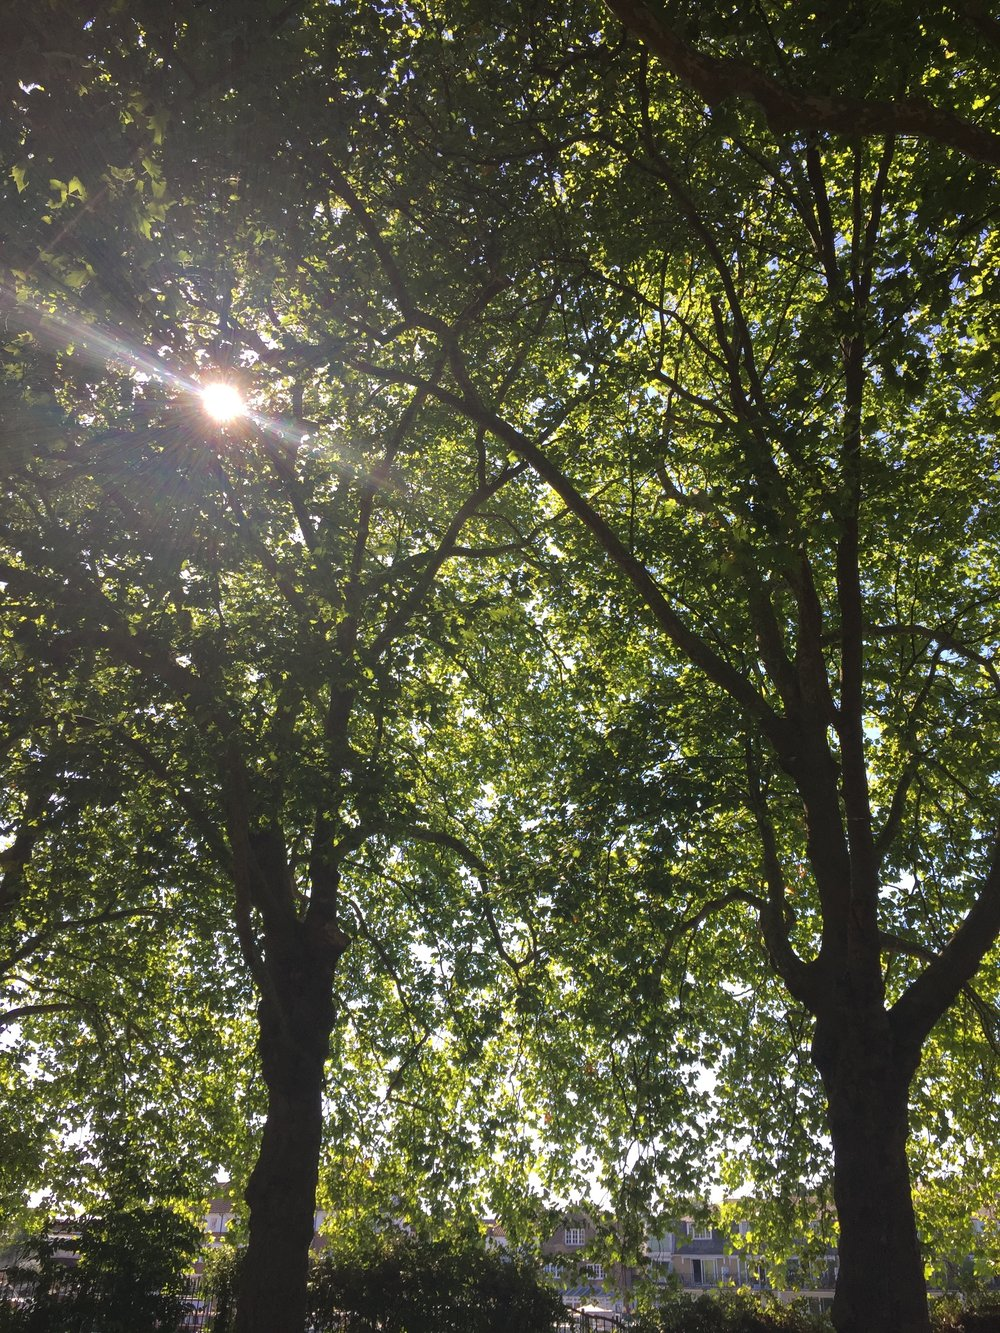 This photo was taken while having a picnic with my partner. I love the contrast with the sun behind the trees. The different shades of green shown as different parts were lit by the sun.